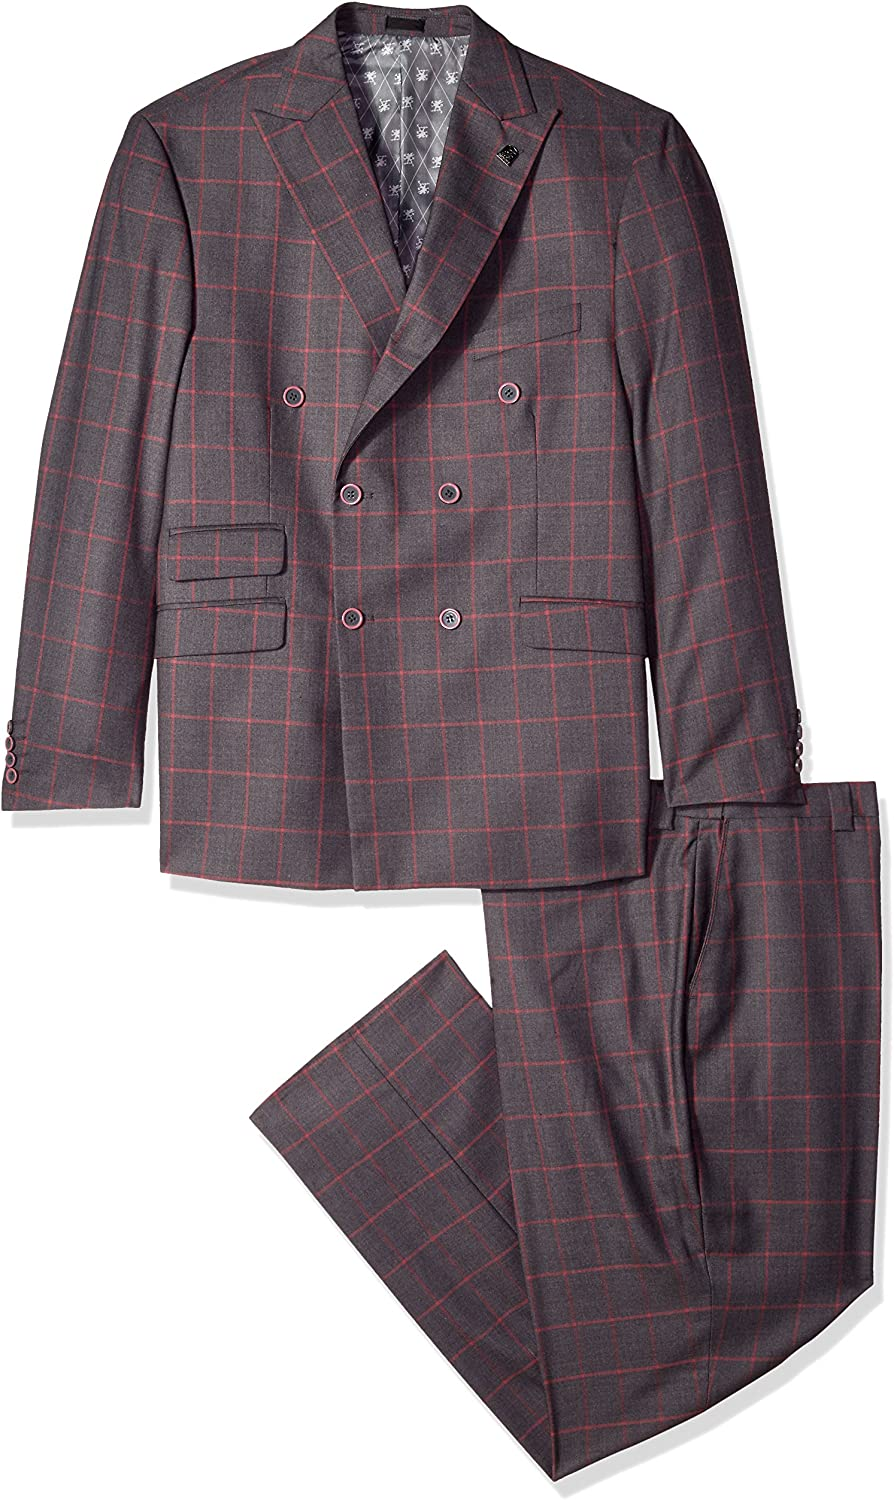 STACY ADAMS Men's Big and Tall Sam Big & Tall Double Breasted Suit